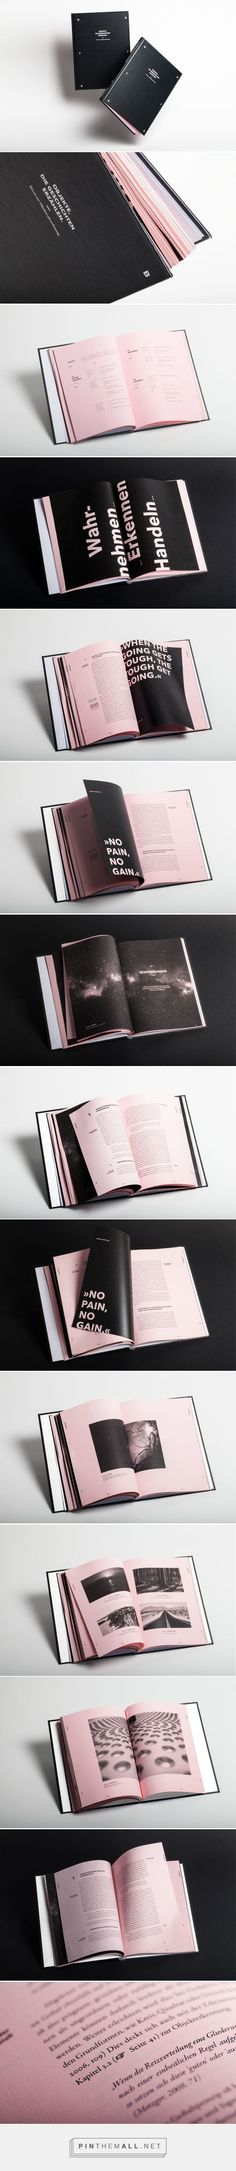 Get your book layout design within 24   https://www.fiverr.com/mkninja/design-a-professional-book-layout-or-interior